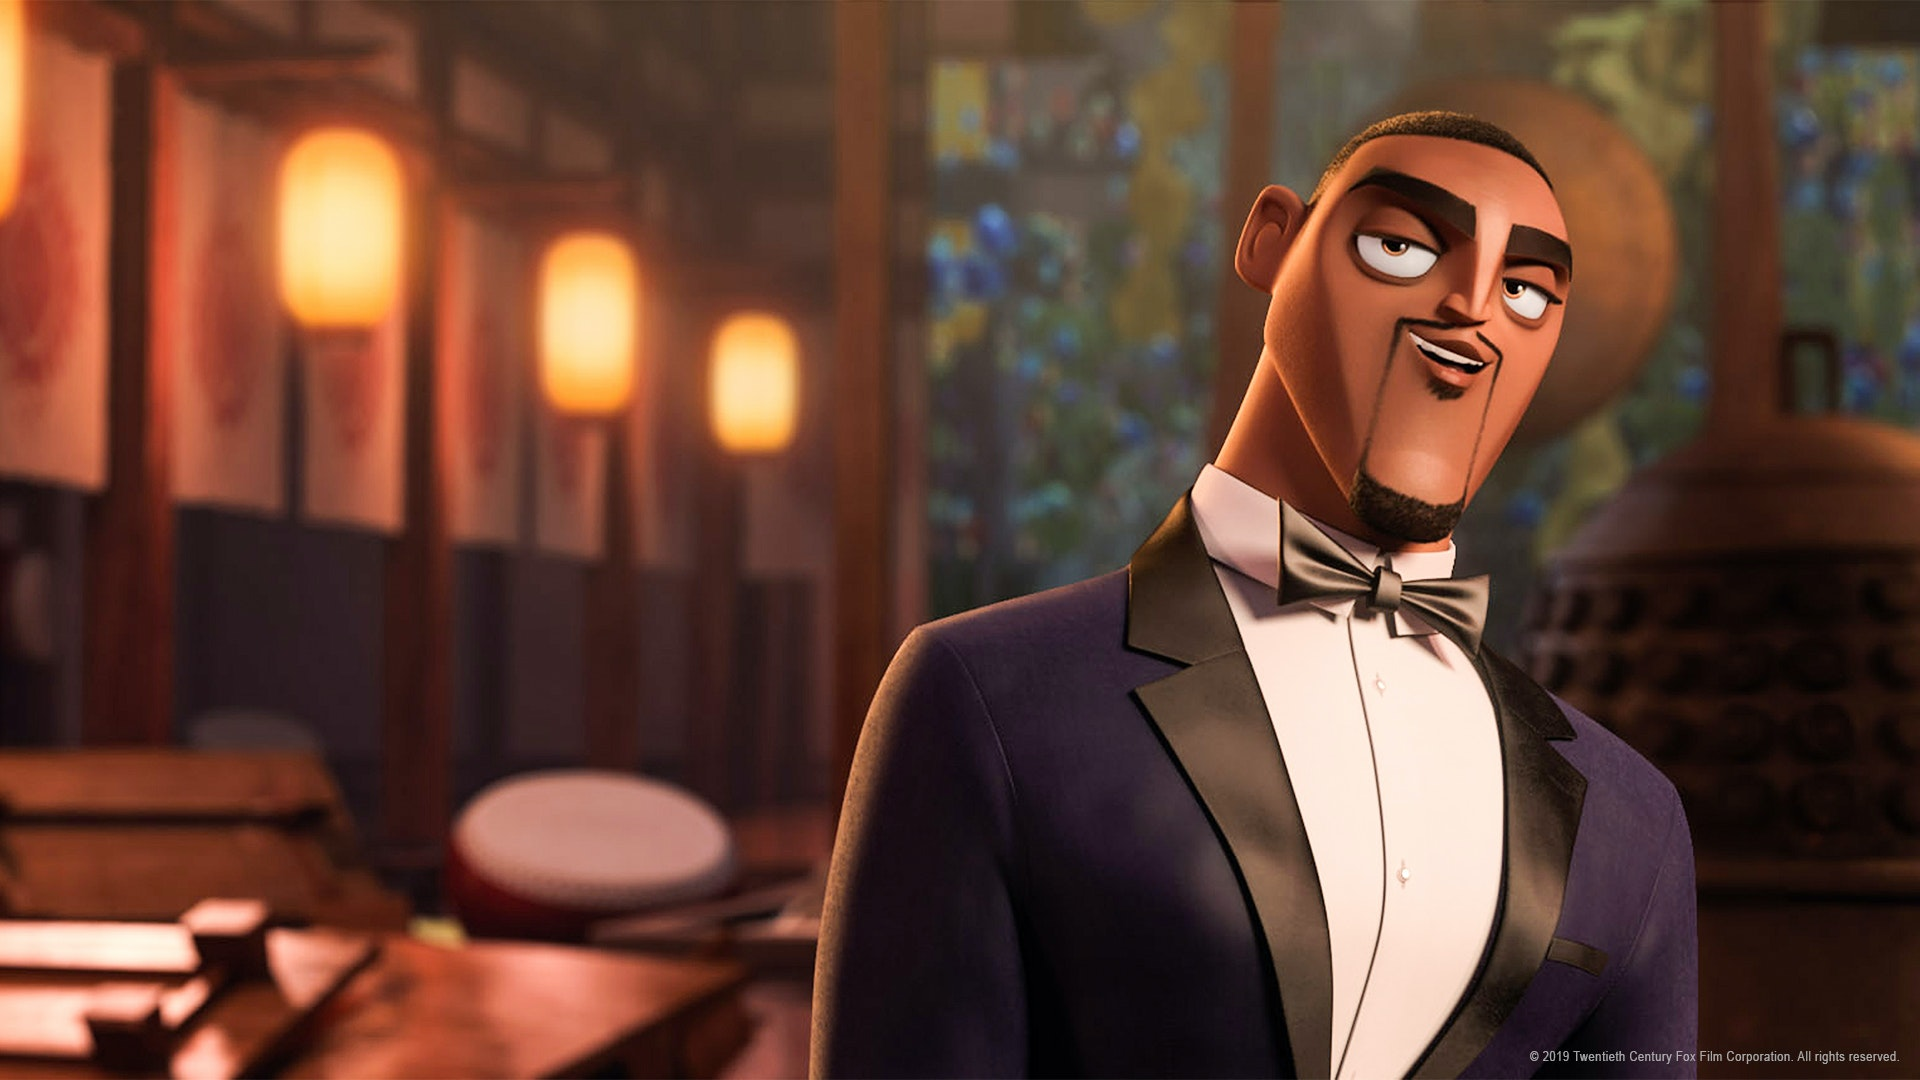 Watch Spies In Disguise Online With Neon From 7 99